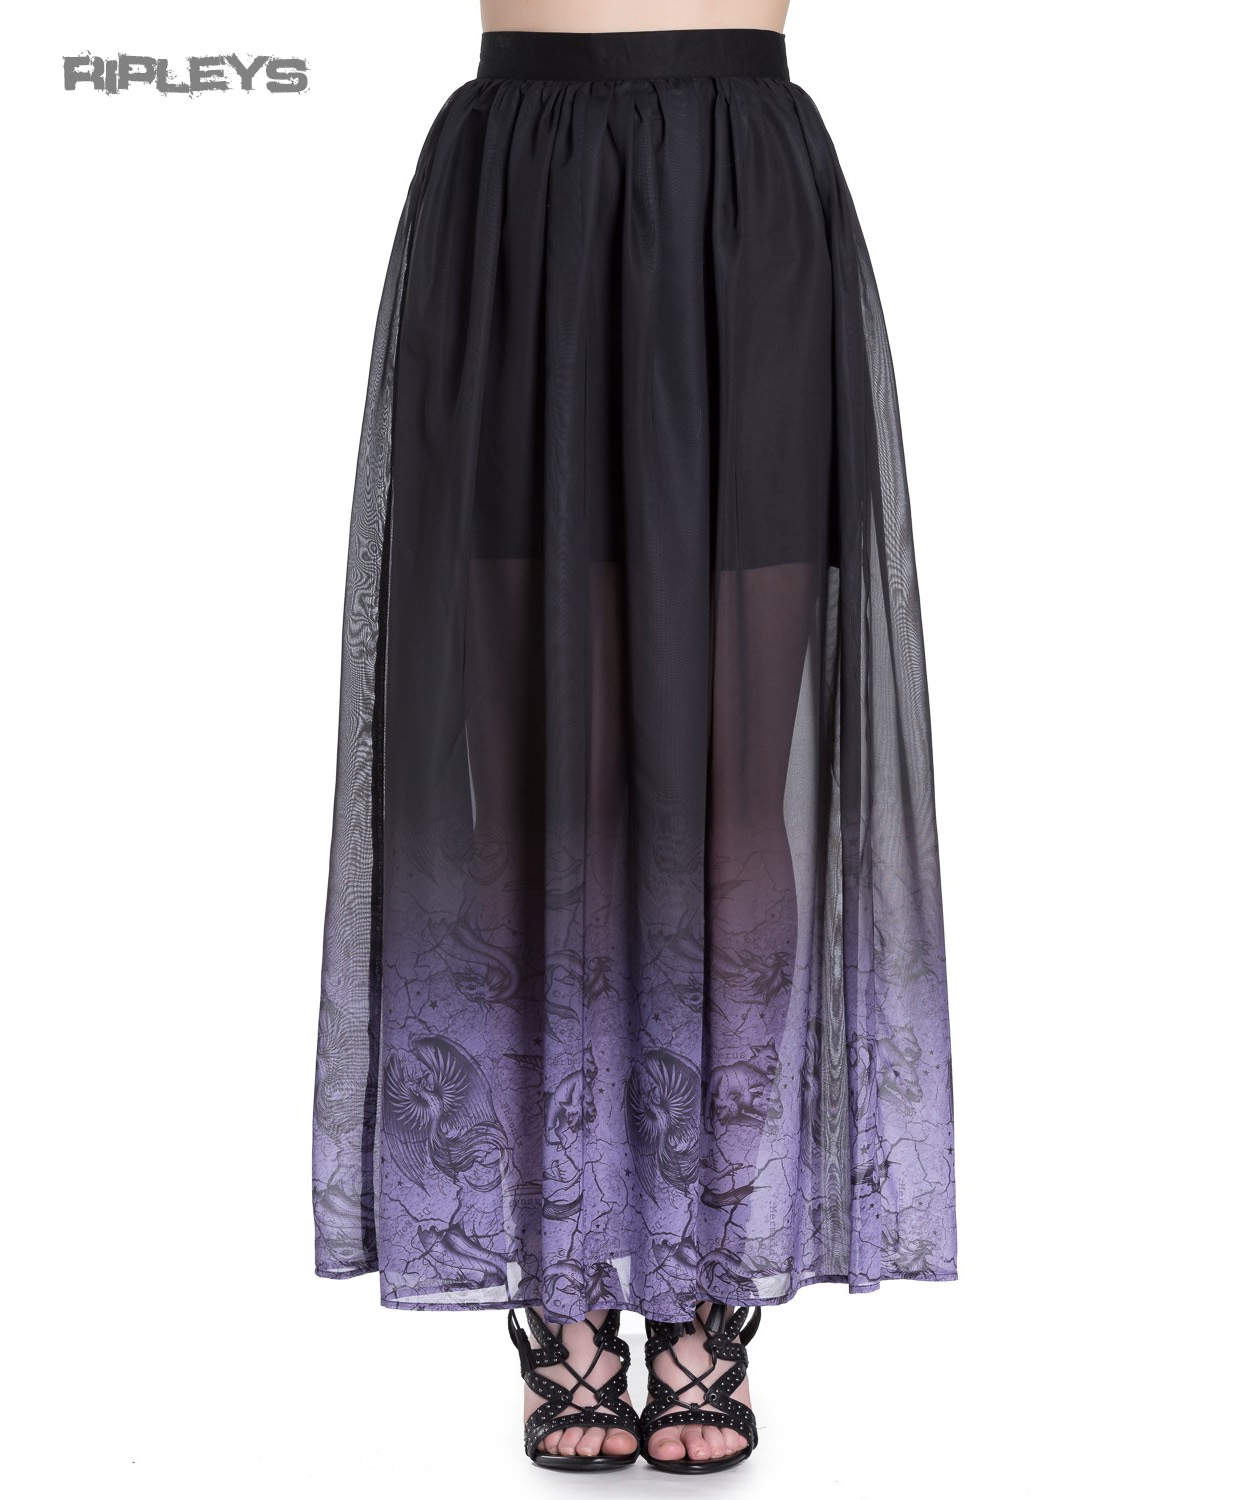 Hell-Bunny-Spin-Doctor-Goth-Purple-Mystical-EVADINE-Maxi-Skirt-All-Sizes thumbnail 14